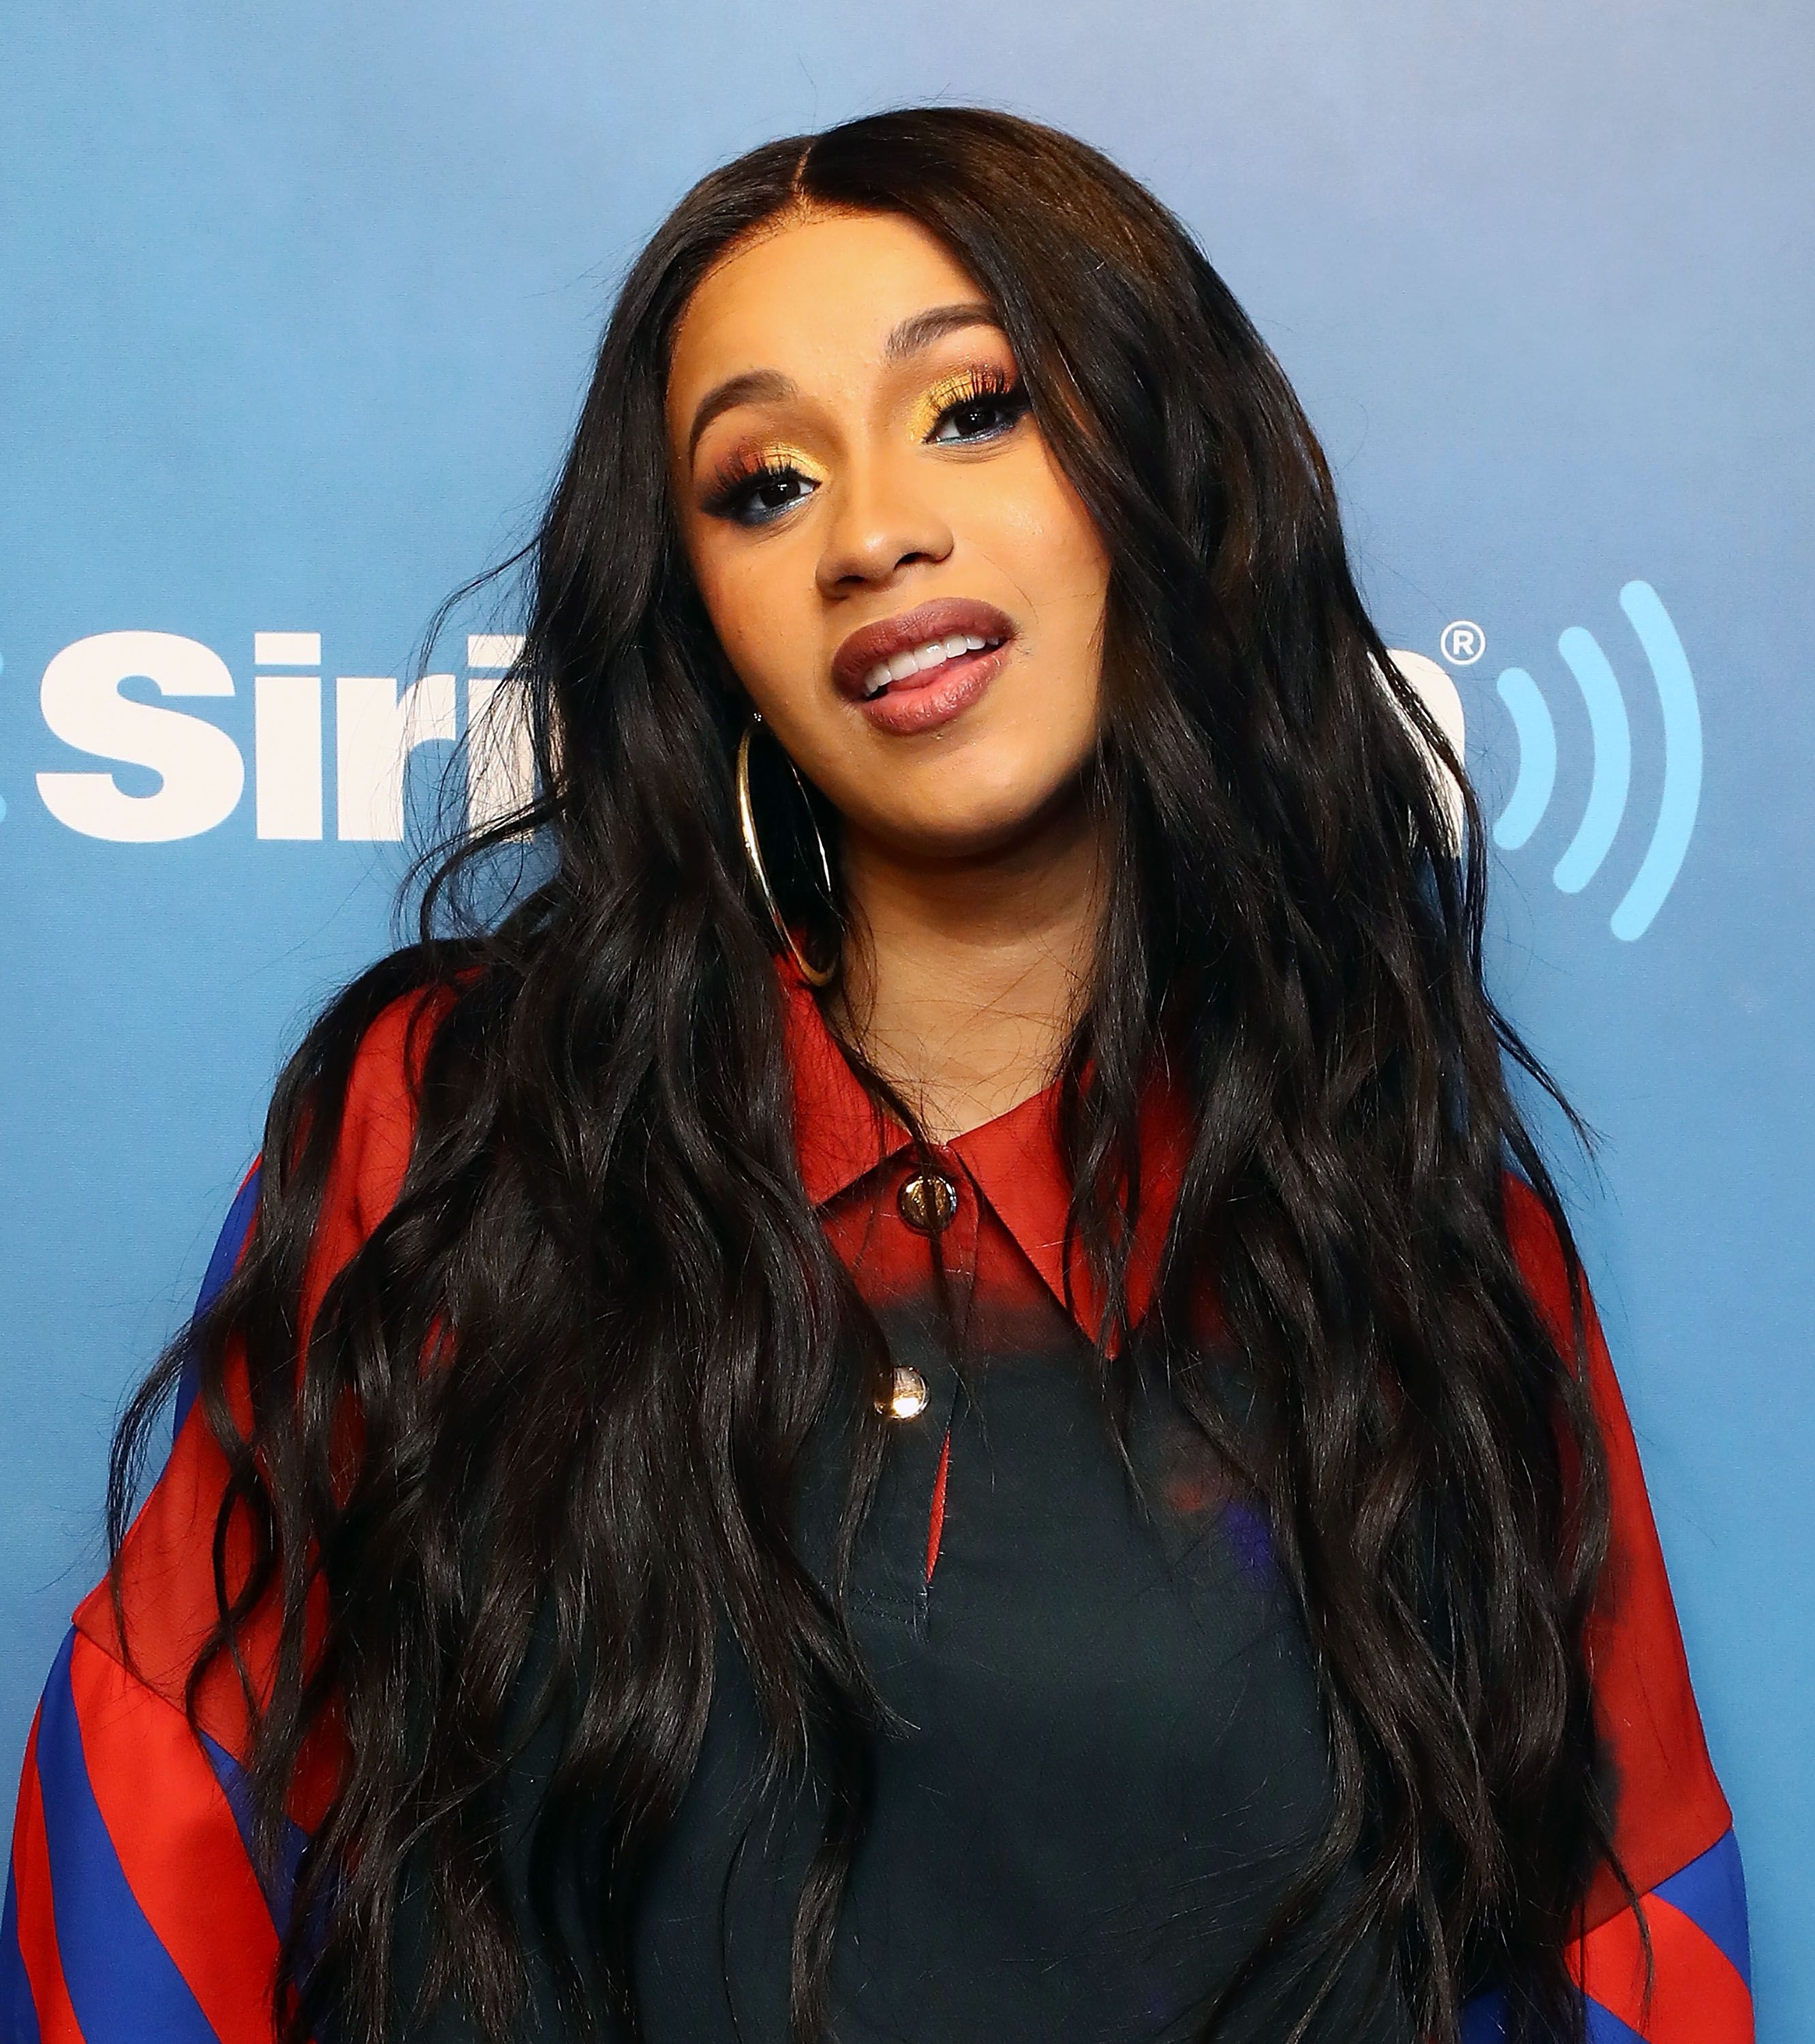 Rapper Cardi B at the SiriusXM Studios on April 10, 2018. | Source: Getty Images